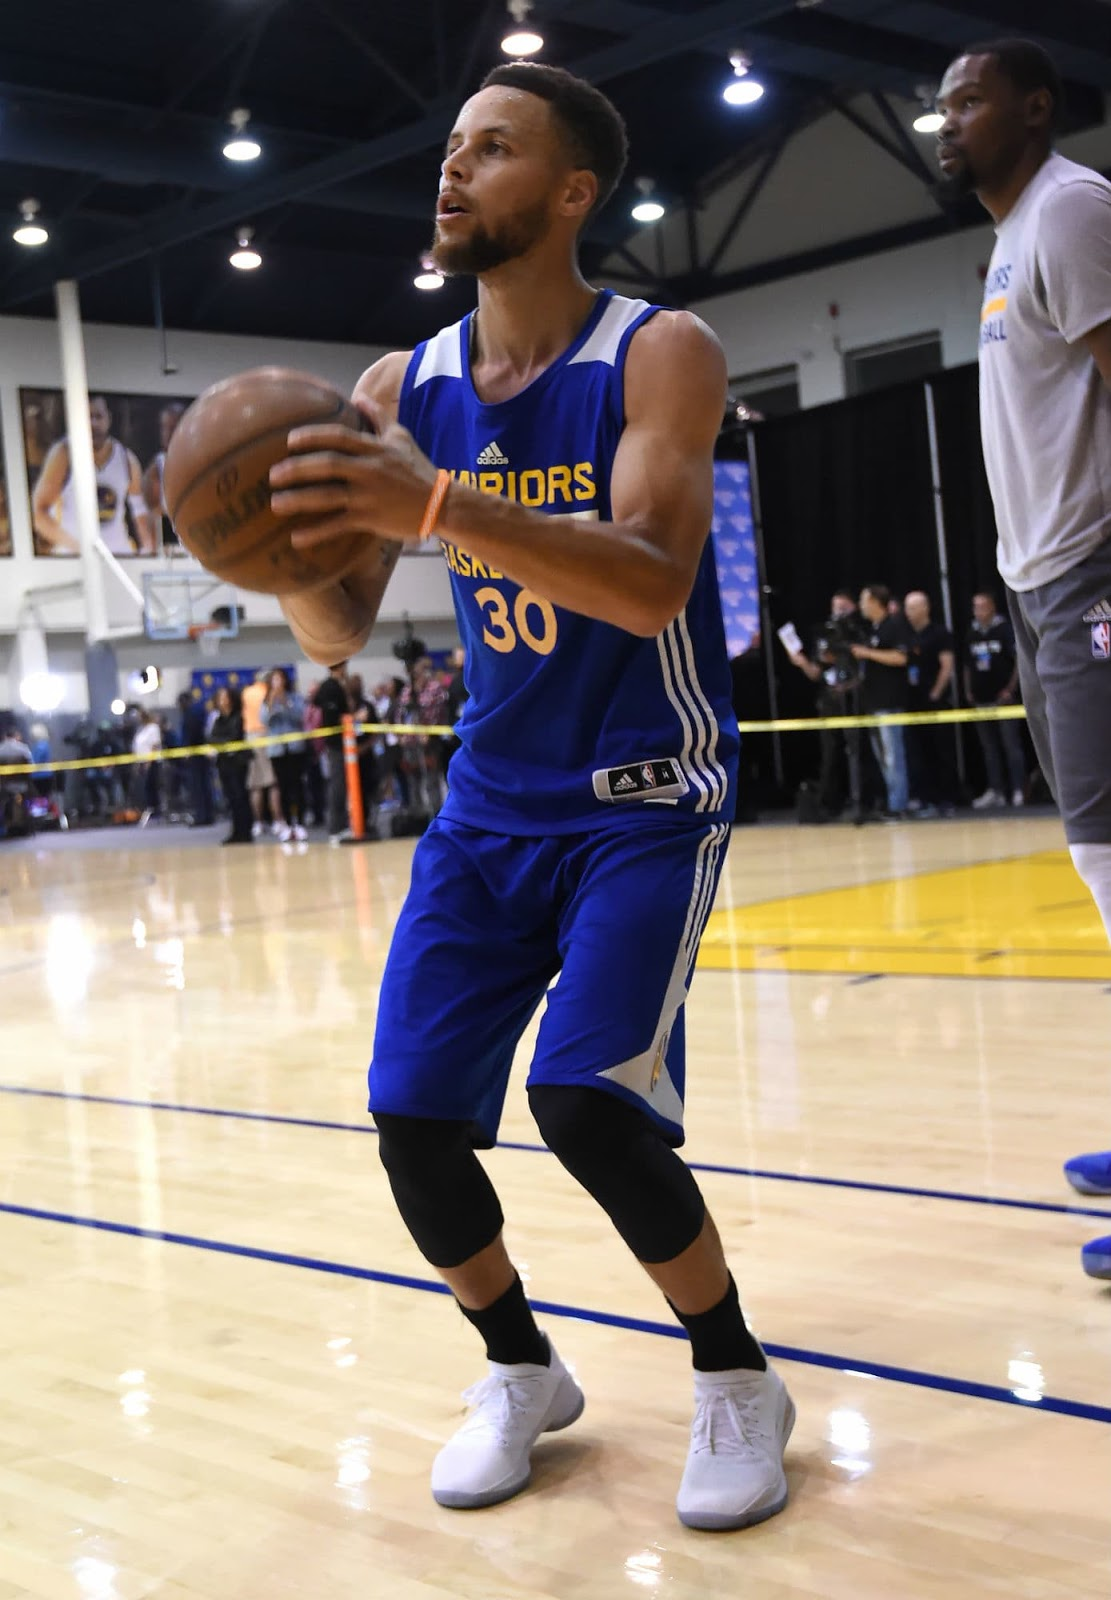 Steph Curry Wore A White Curry 4 Low During Practice